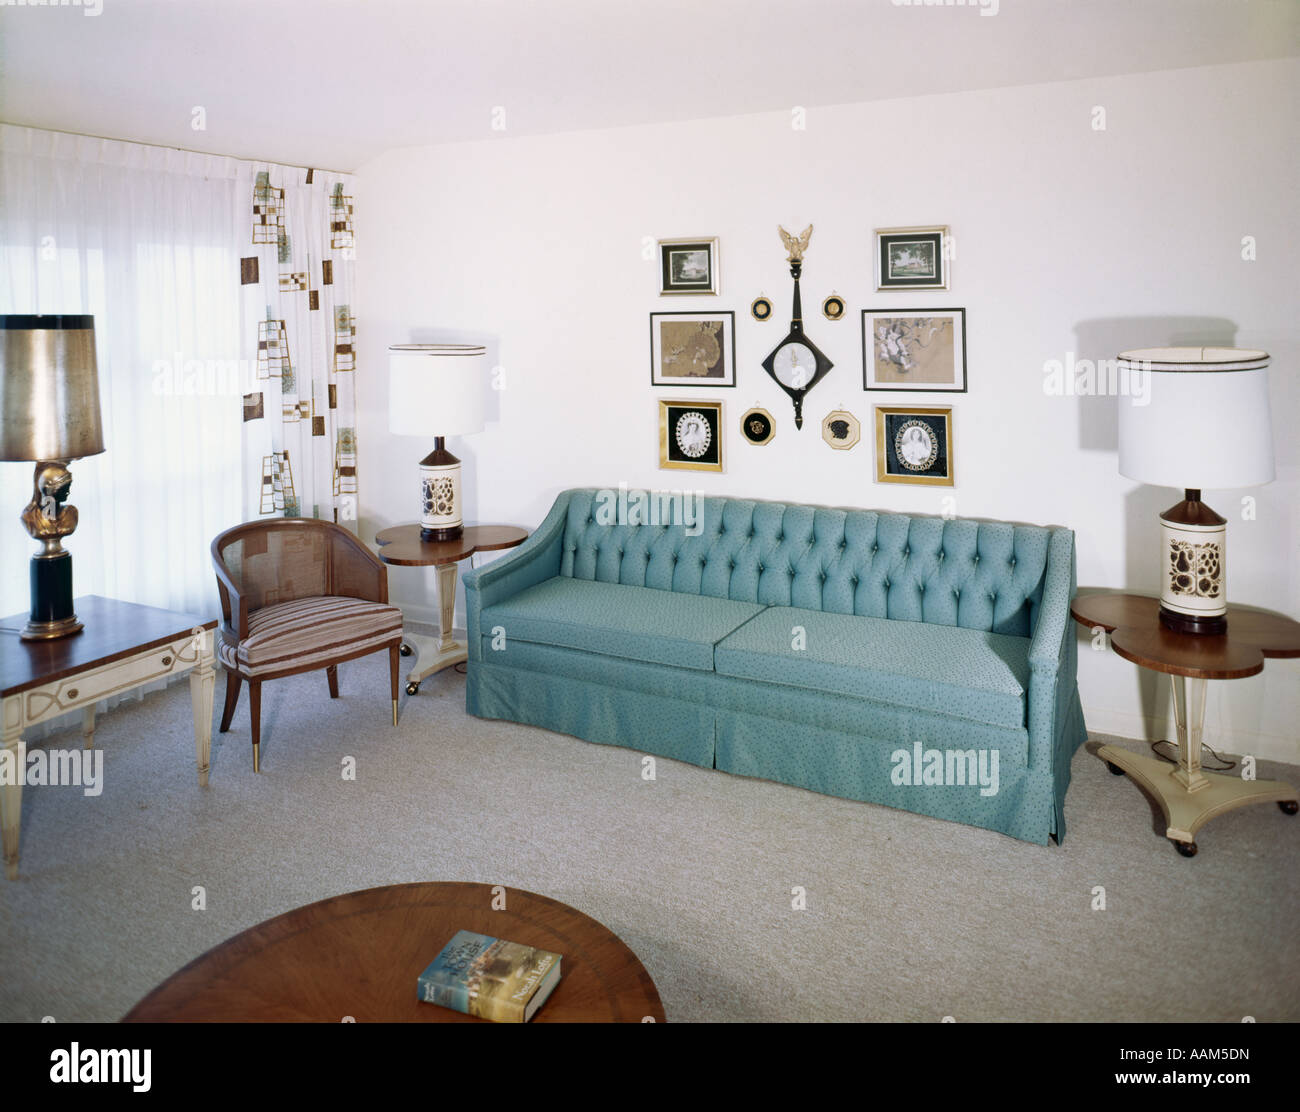 1950s 1960s interior living room decor couch sofa chair decorations stock photo royalty free. Black Bedroom Furniture Sets. Home Design Ideas